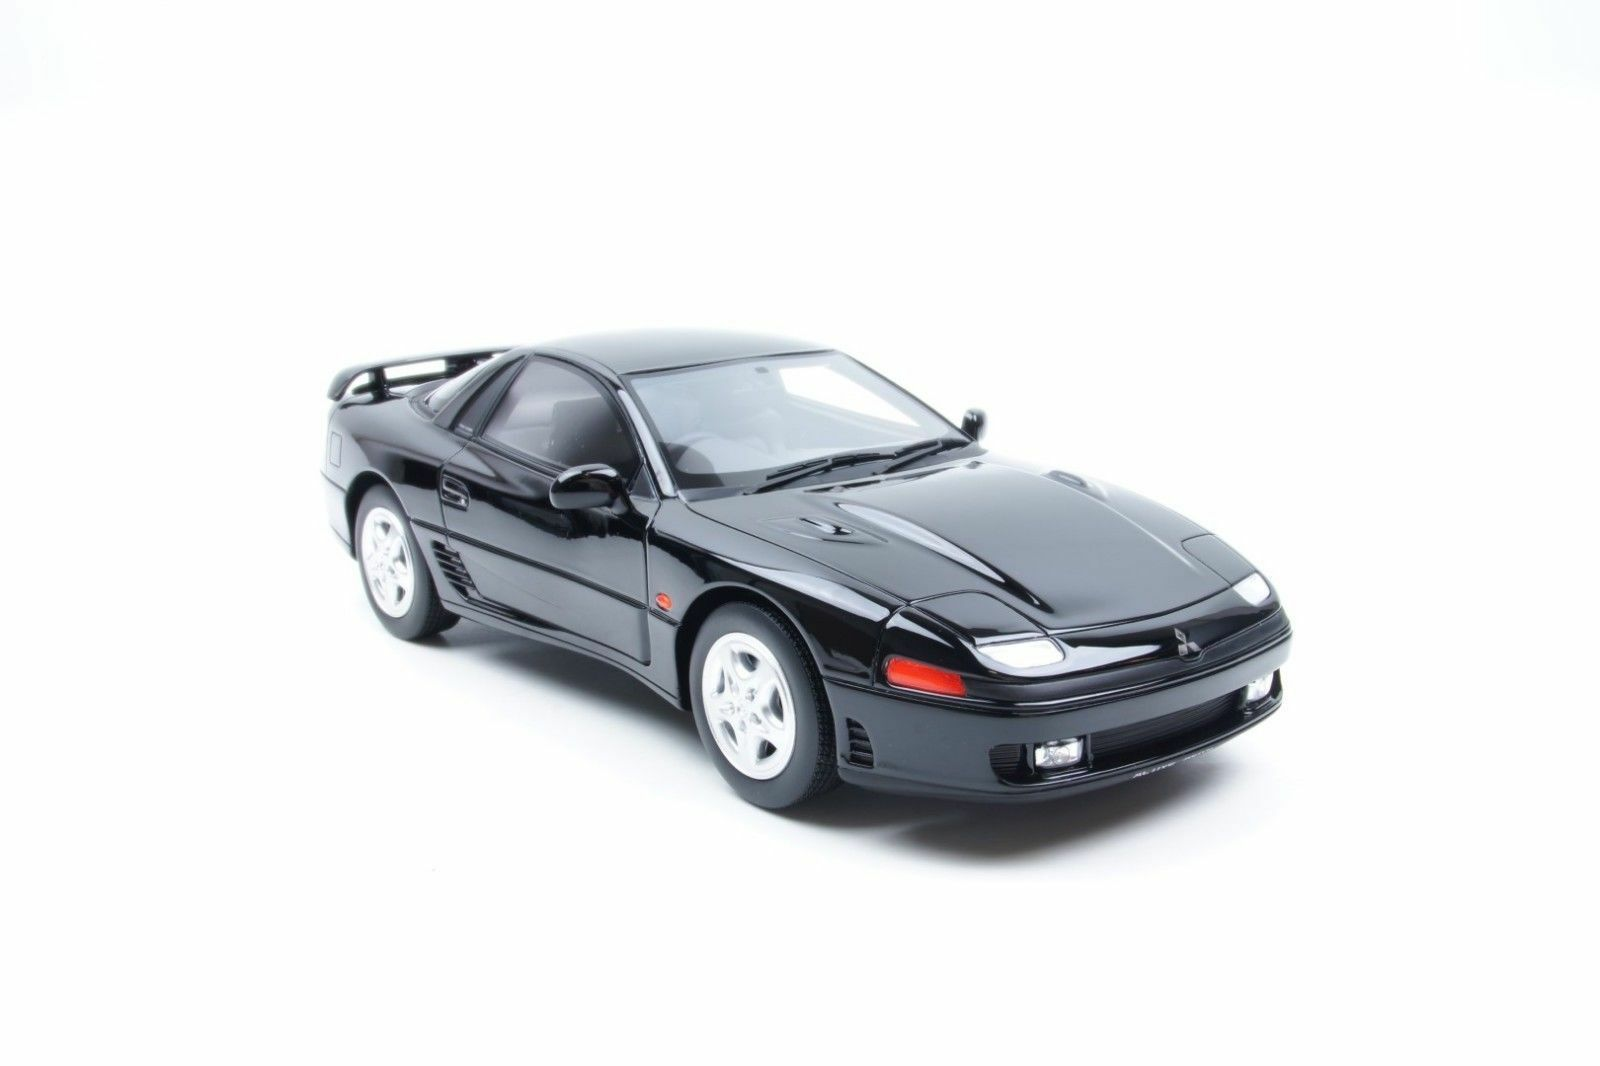 Otto Mobile mitsubishi gto Twin Turbo nero 1 18 asia Special Edition